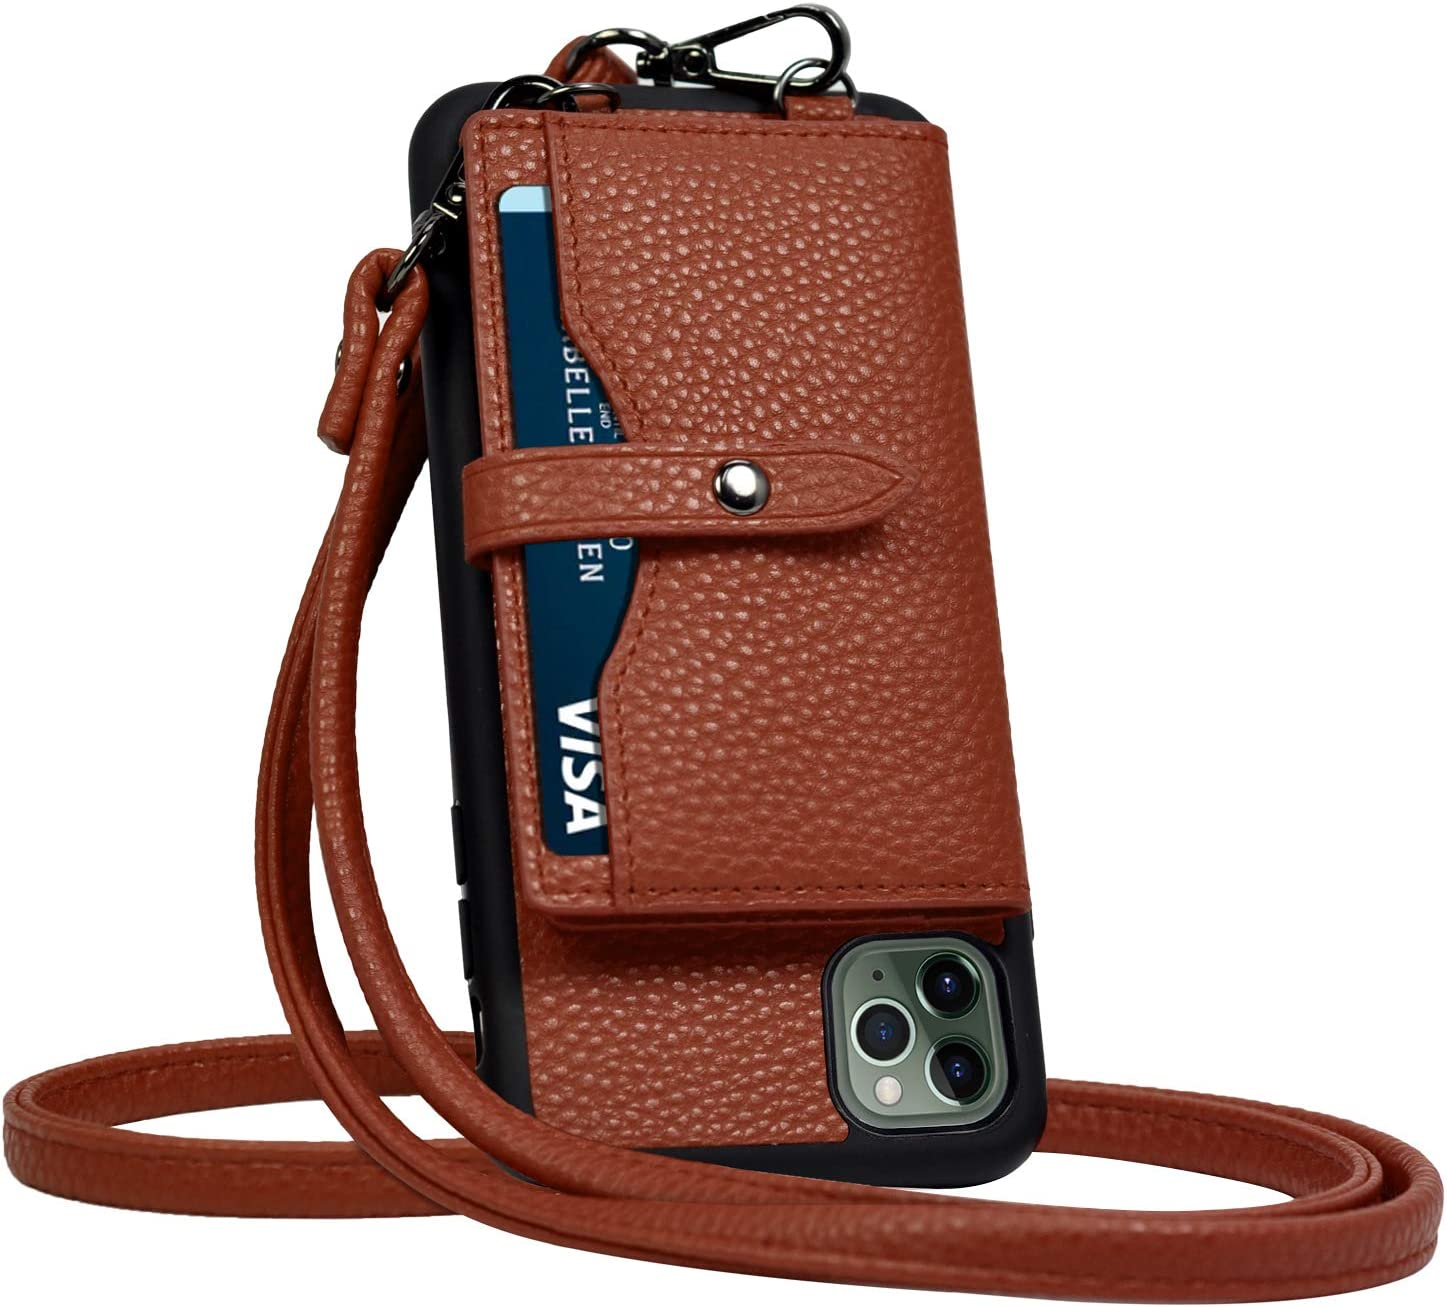 JM JUST MUST iPhone 11 Pro Wallet Case,Crossbody Case with Credit Card Holder case,iPhone 11 Pro Strap Case,Leather Case Protective Cover for iPhone 11 Pro 5.8 inch